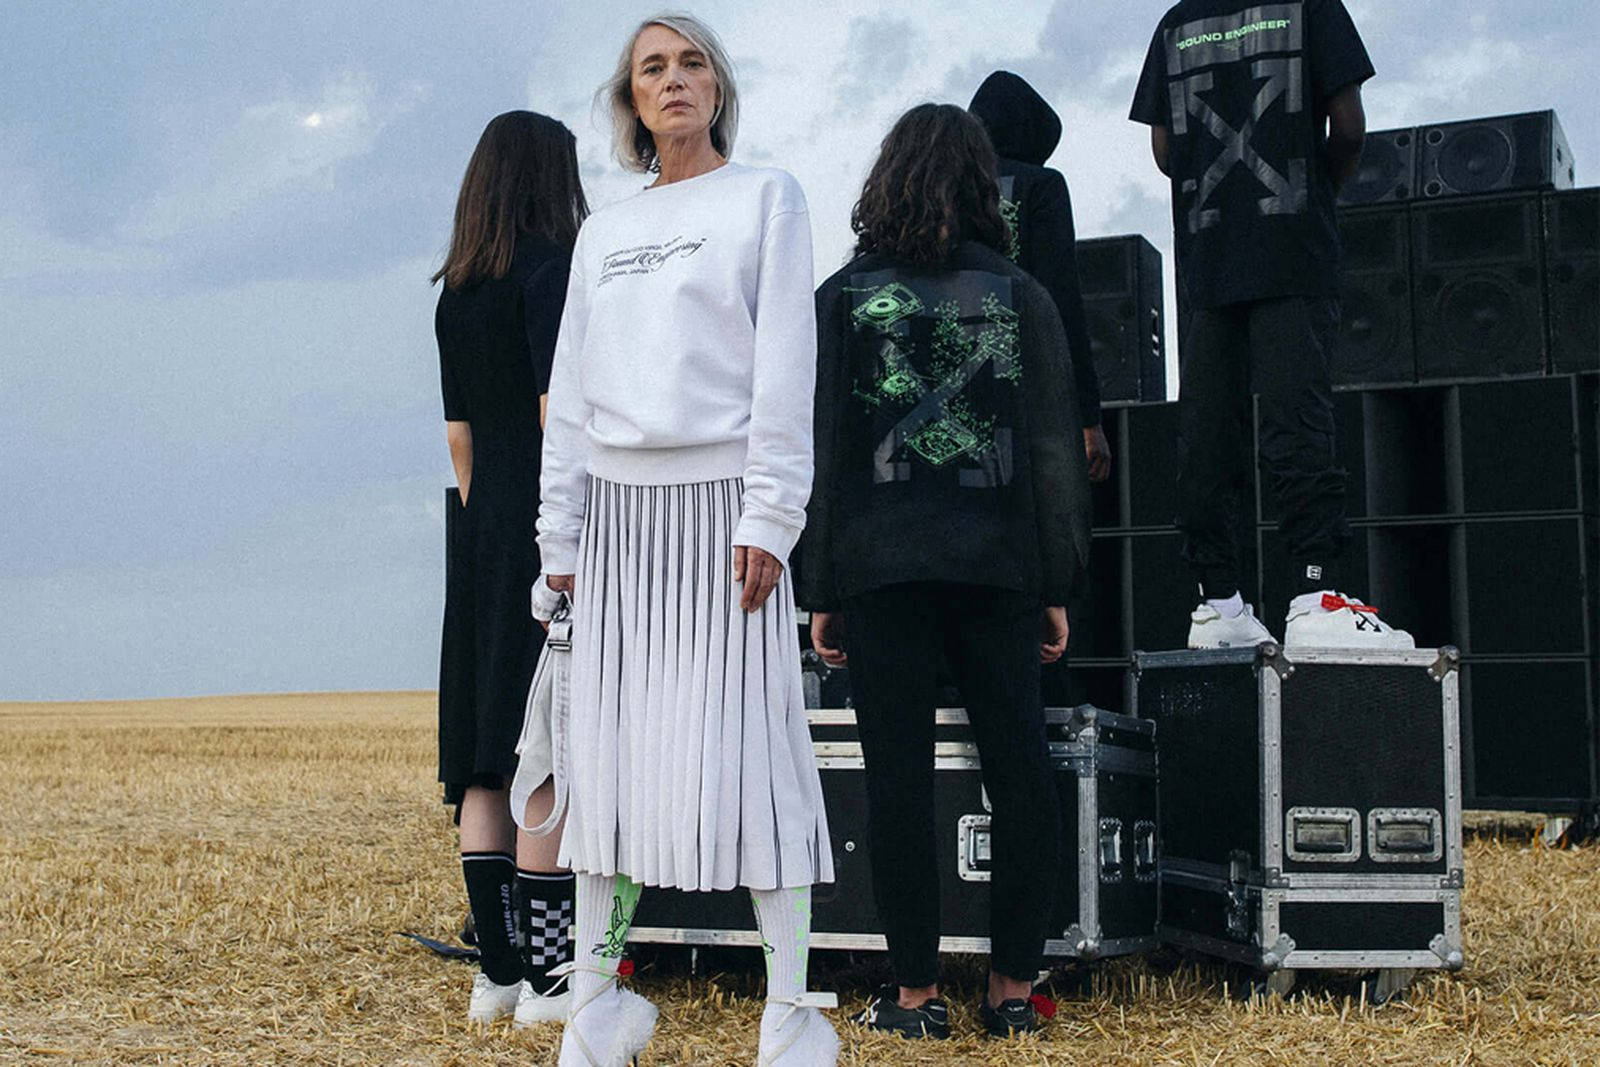 off-white-pioneer-dj-controller-apparel-collab- (14)